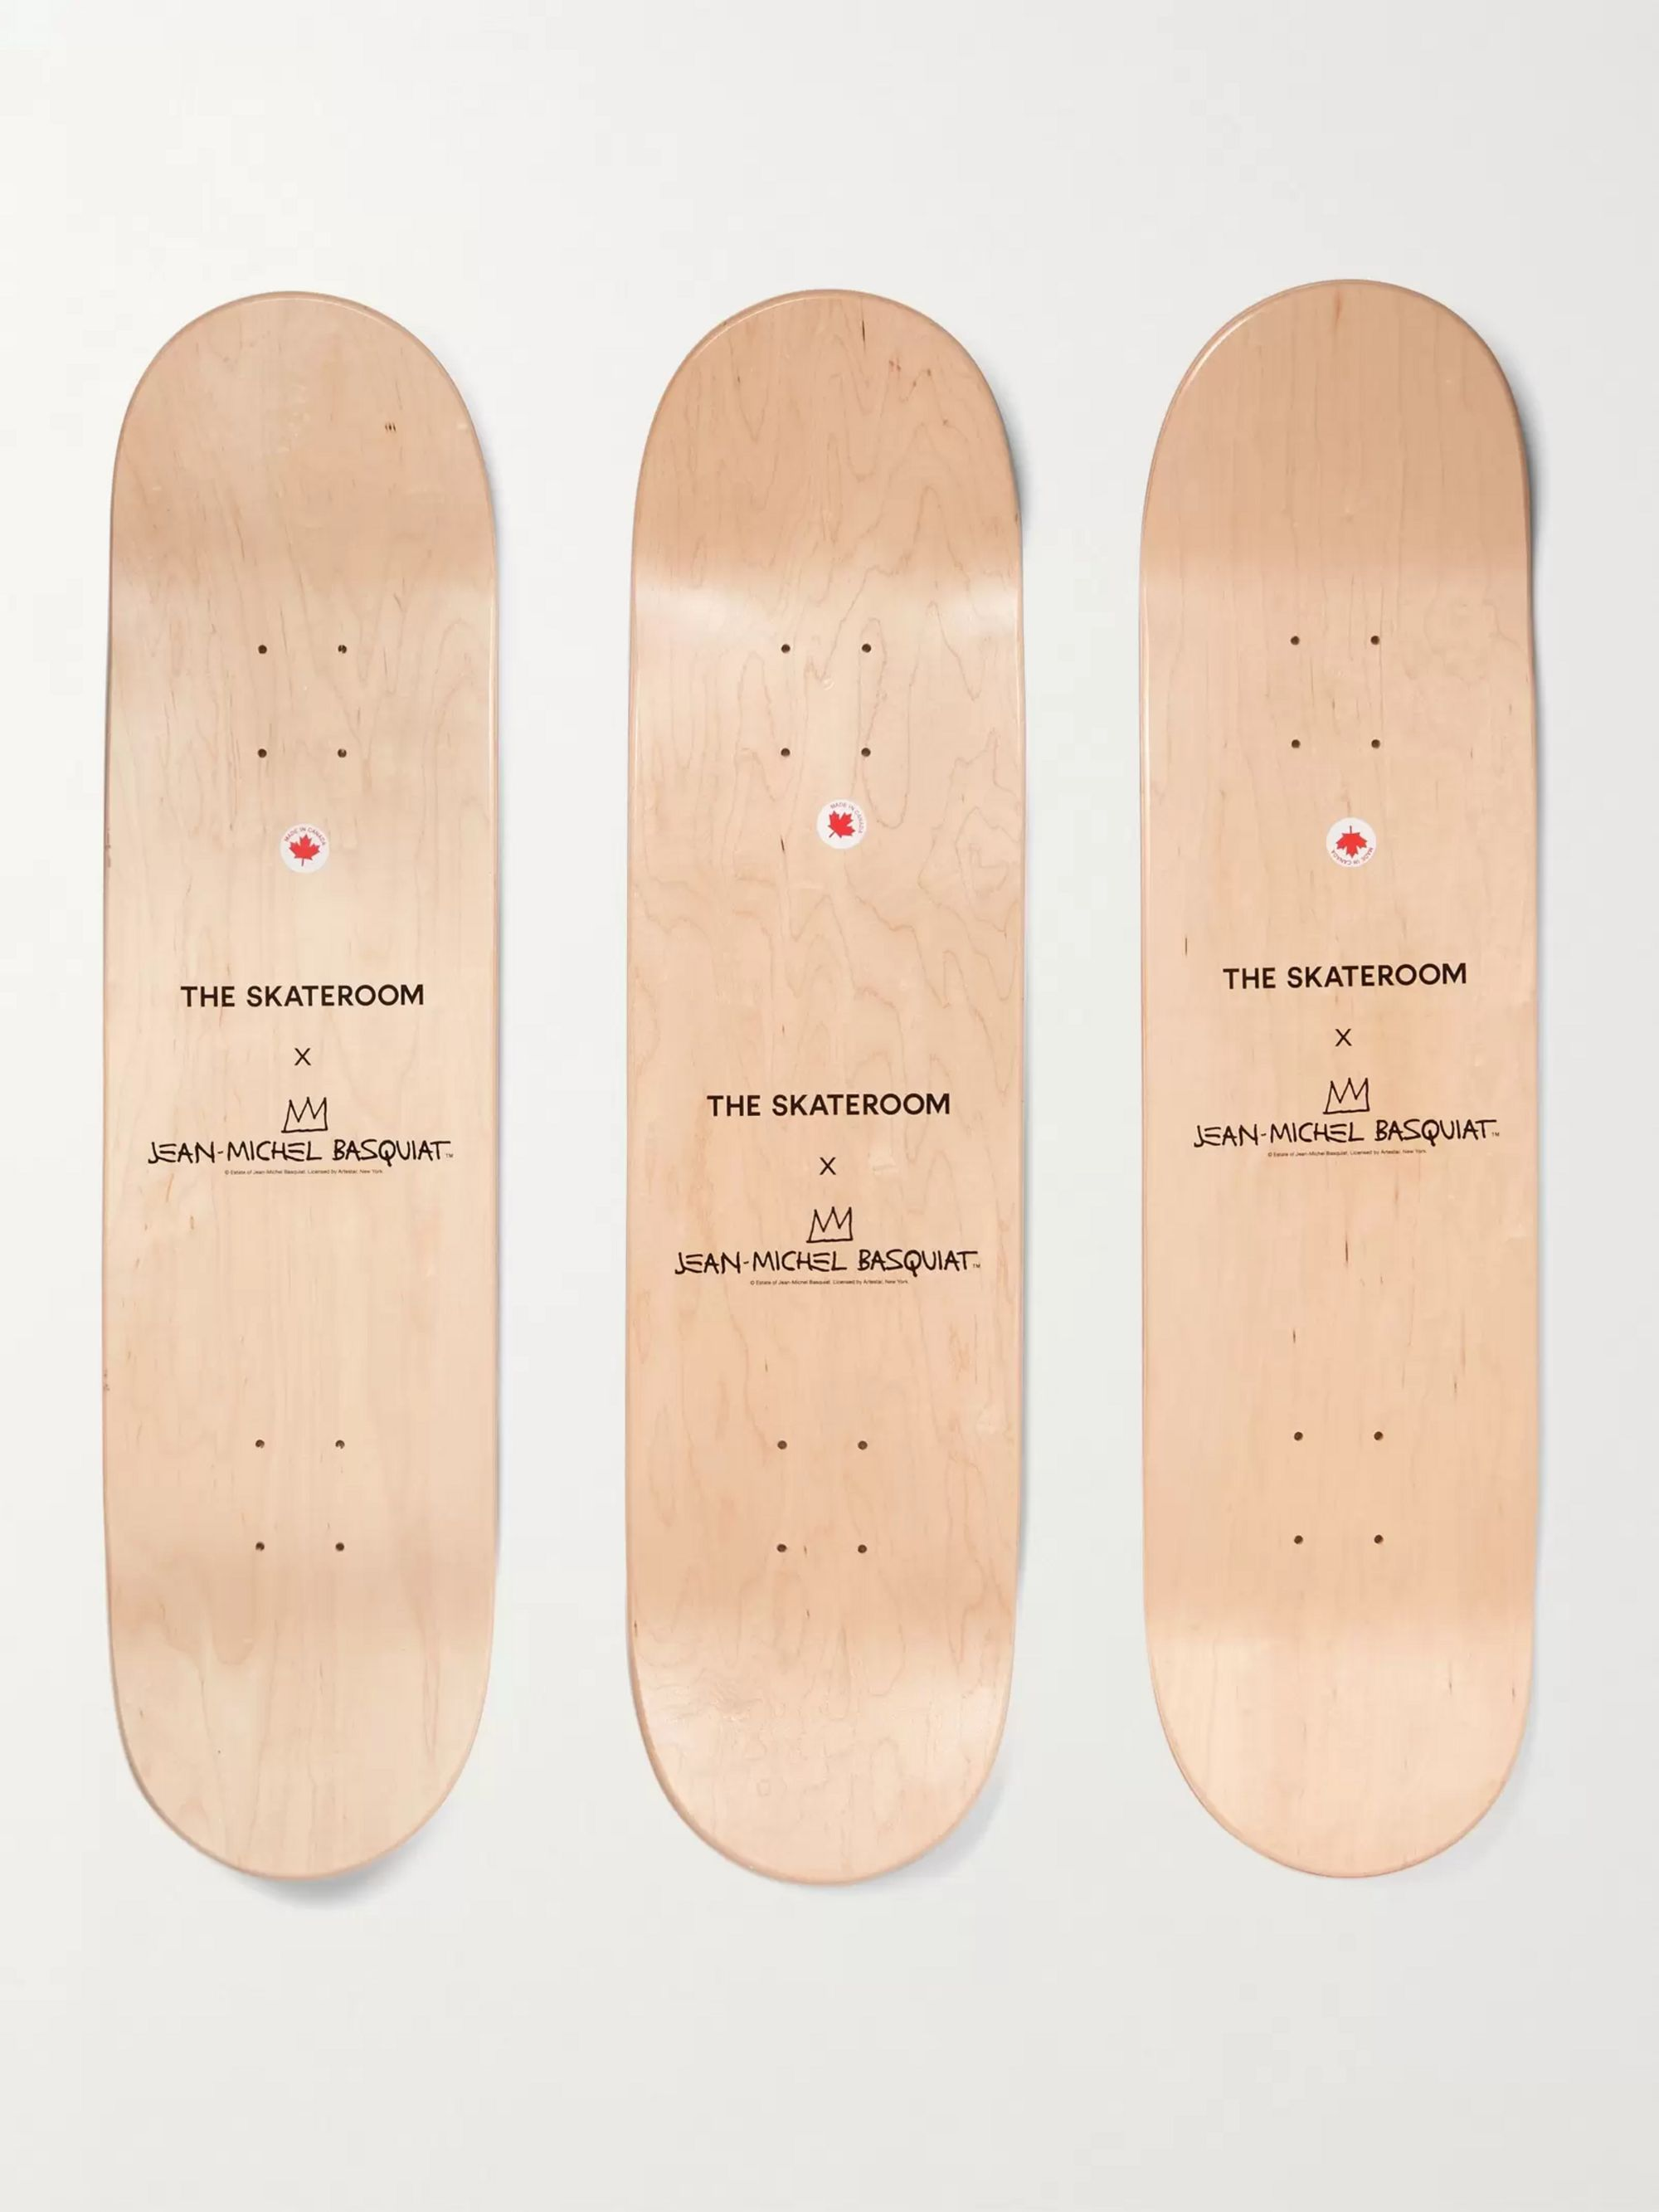 The SkateRoom + Jean-Michel Basquiat Set of Three Printed Wooden Skateboards